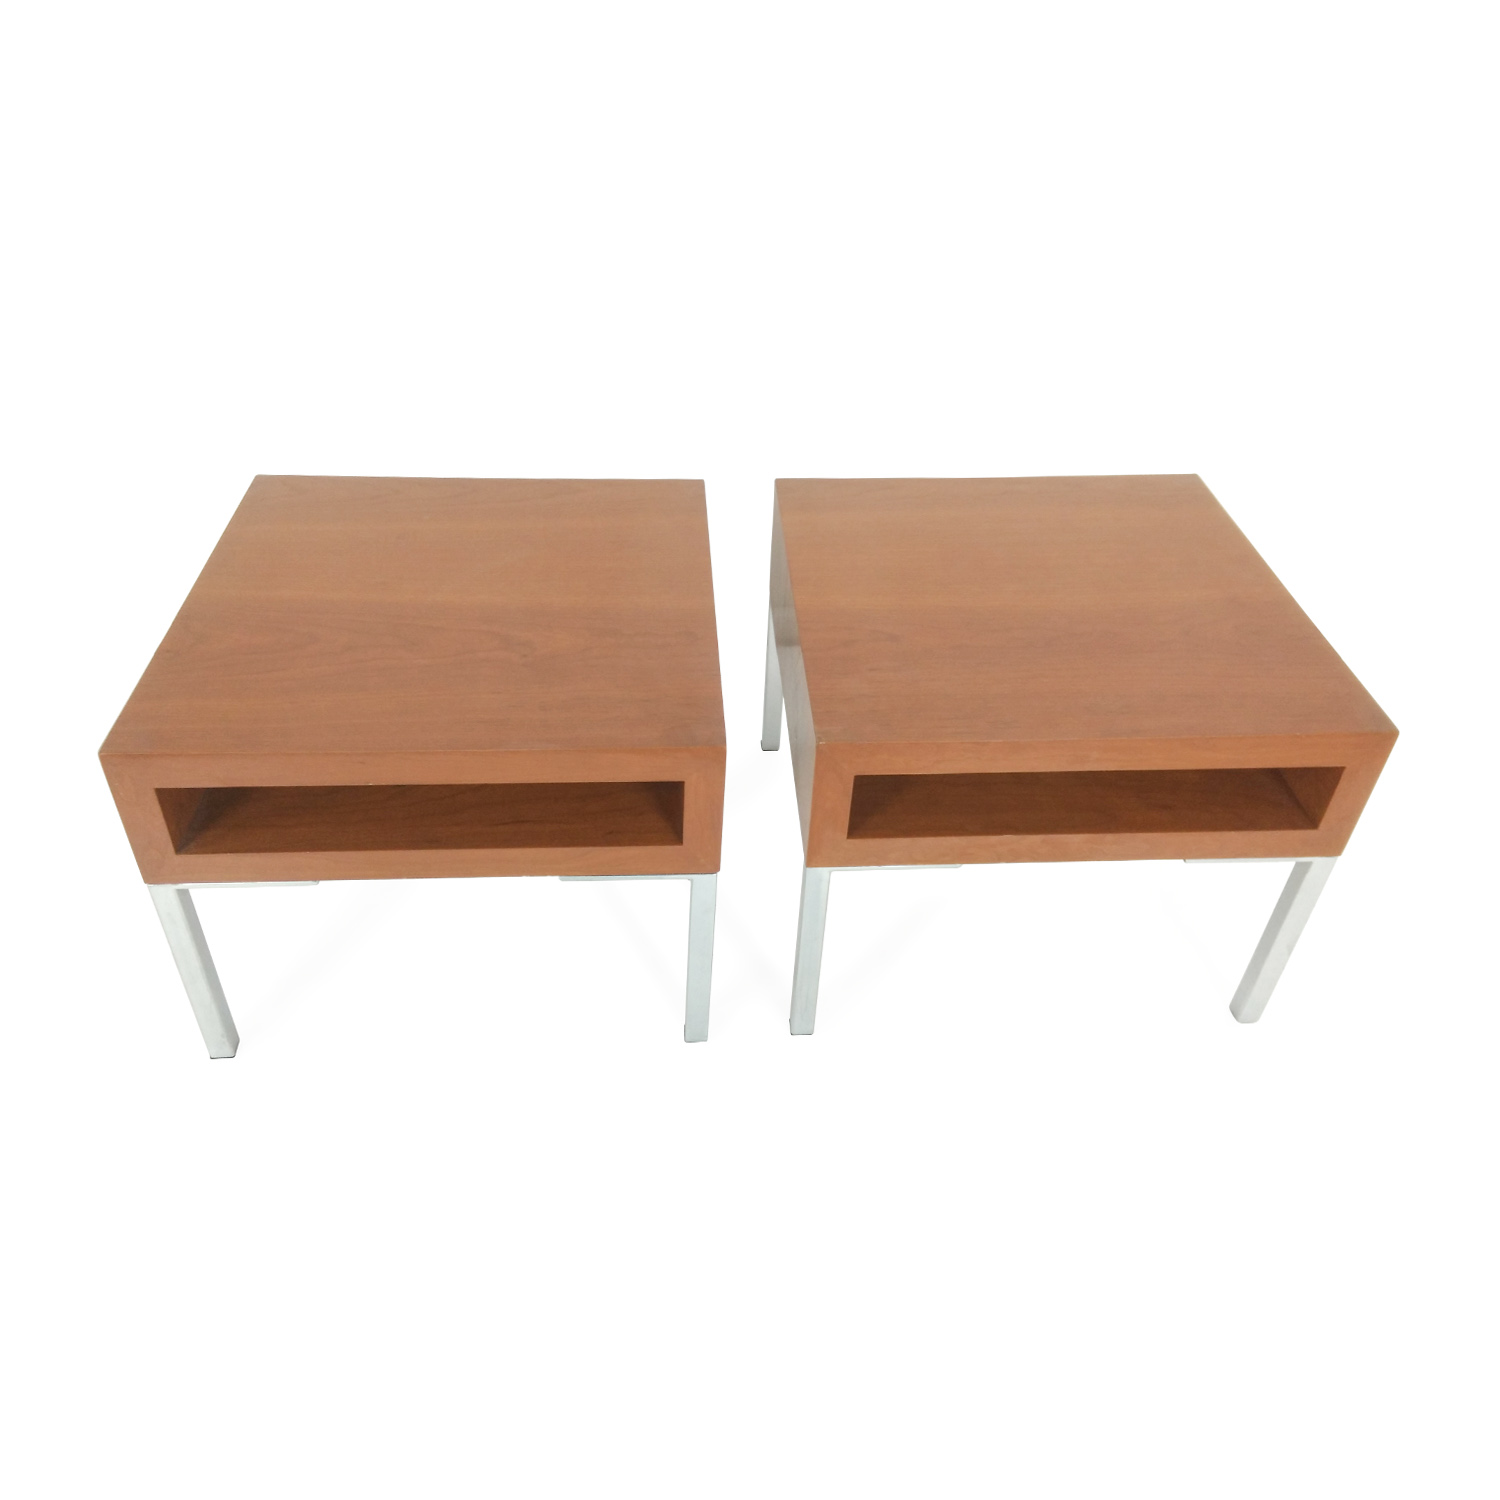 Pair Of Designer End Tables / Coffee Tables